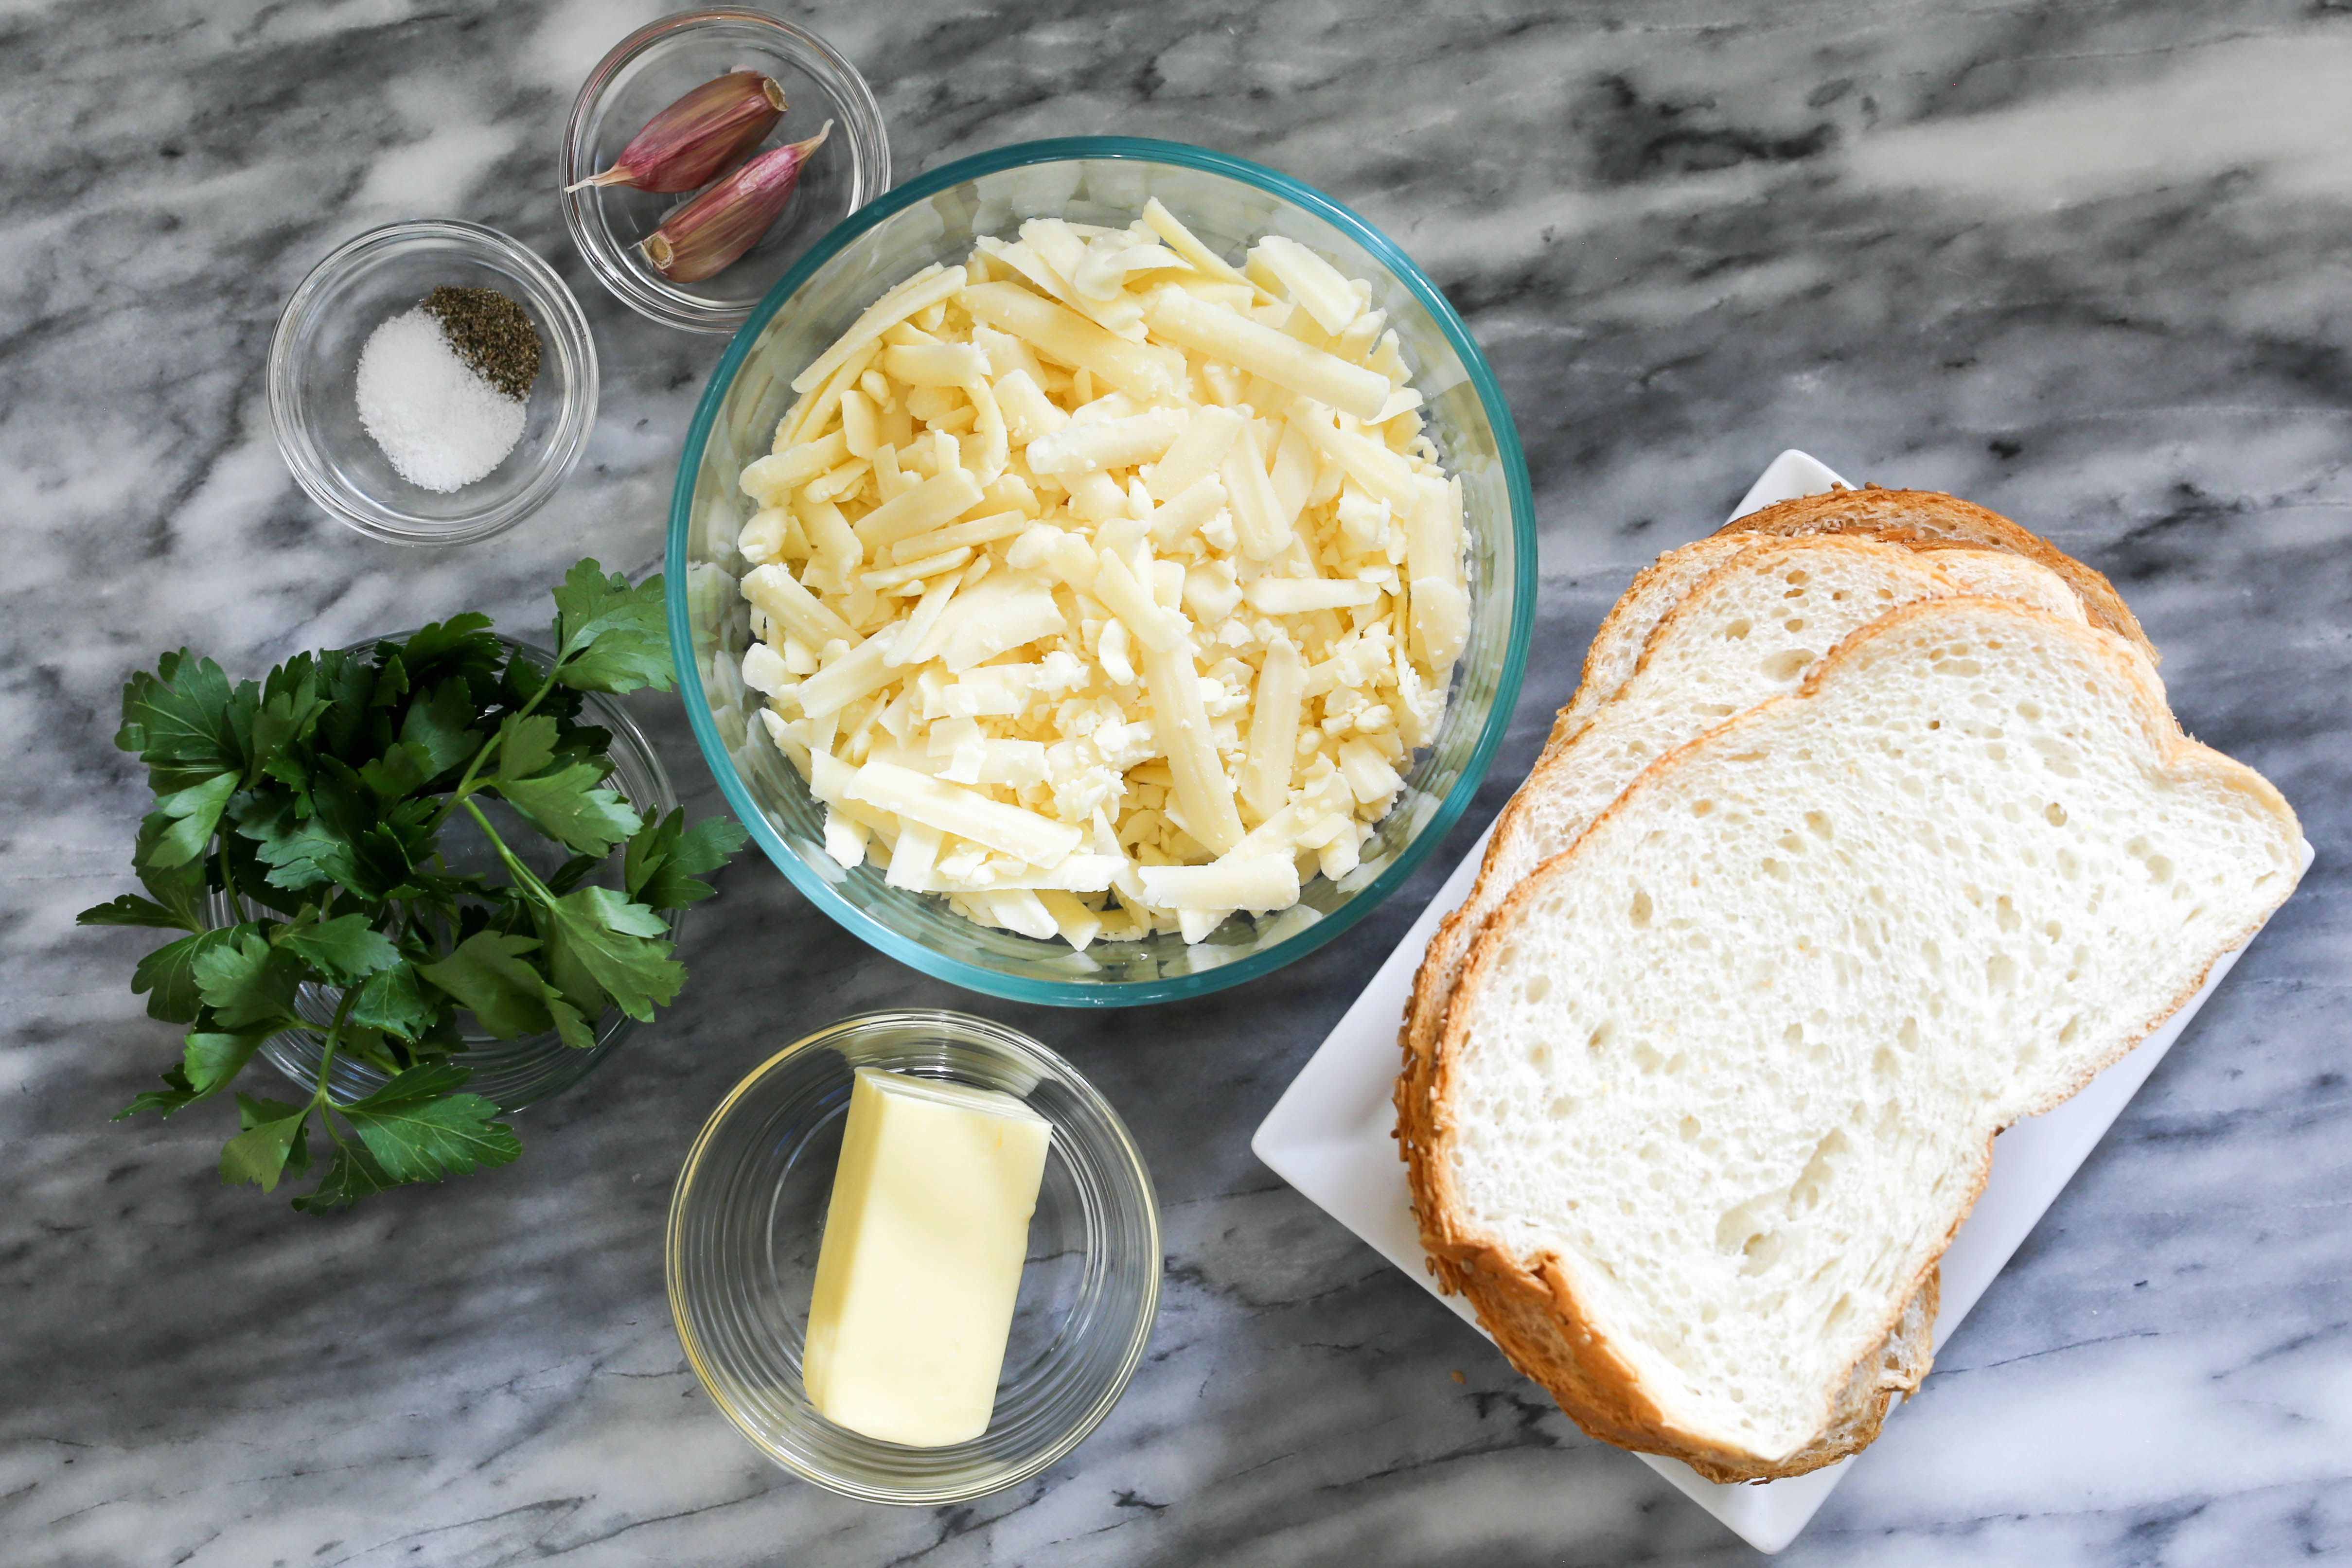 Ingredients for garlic bread grilled cheese sandwiches